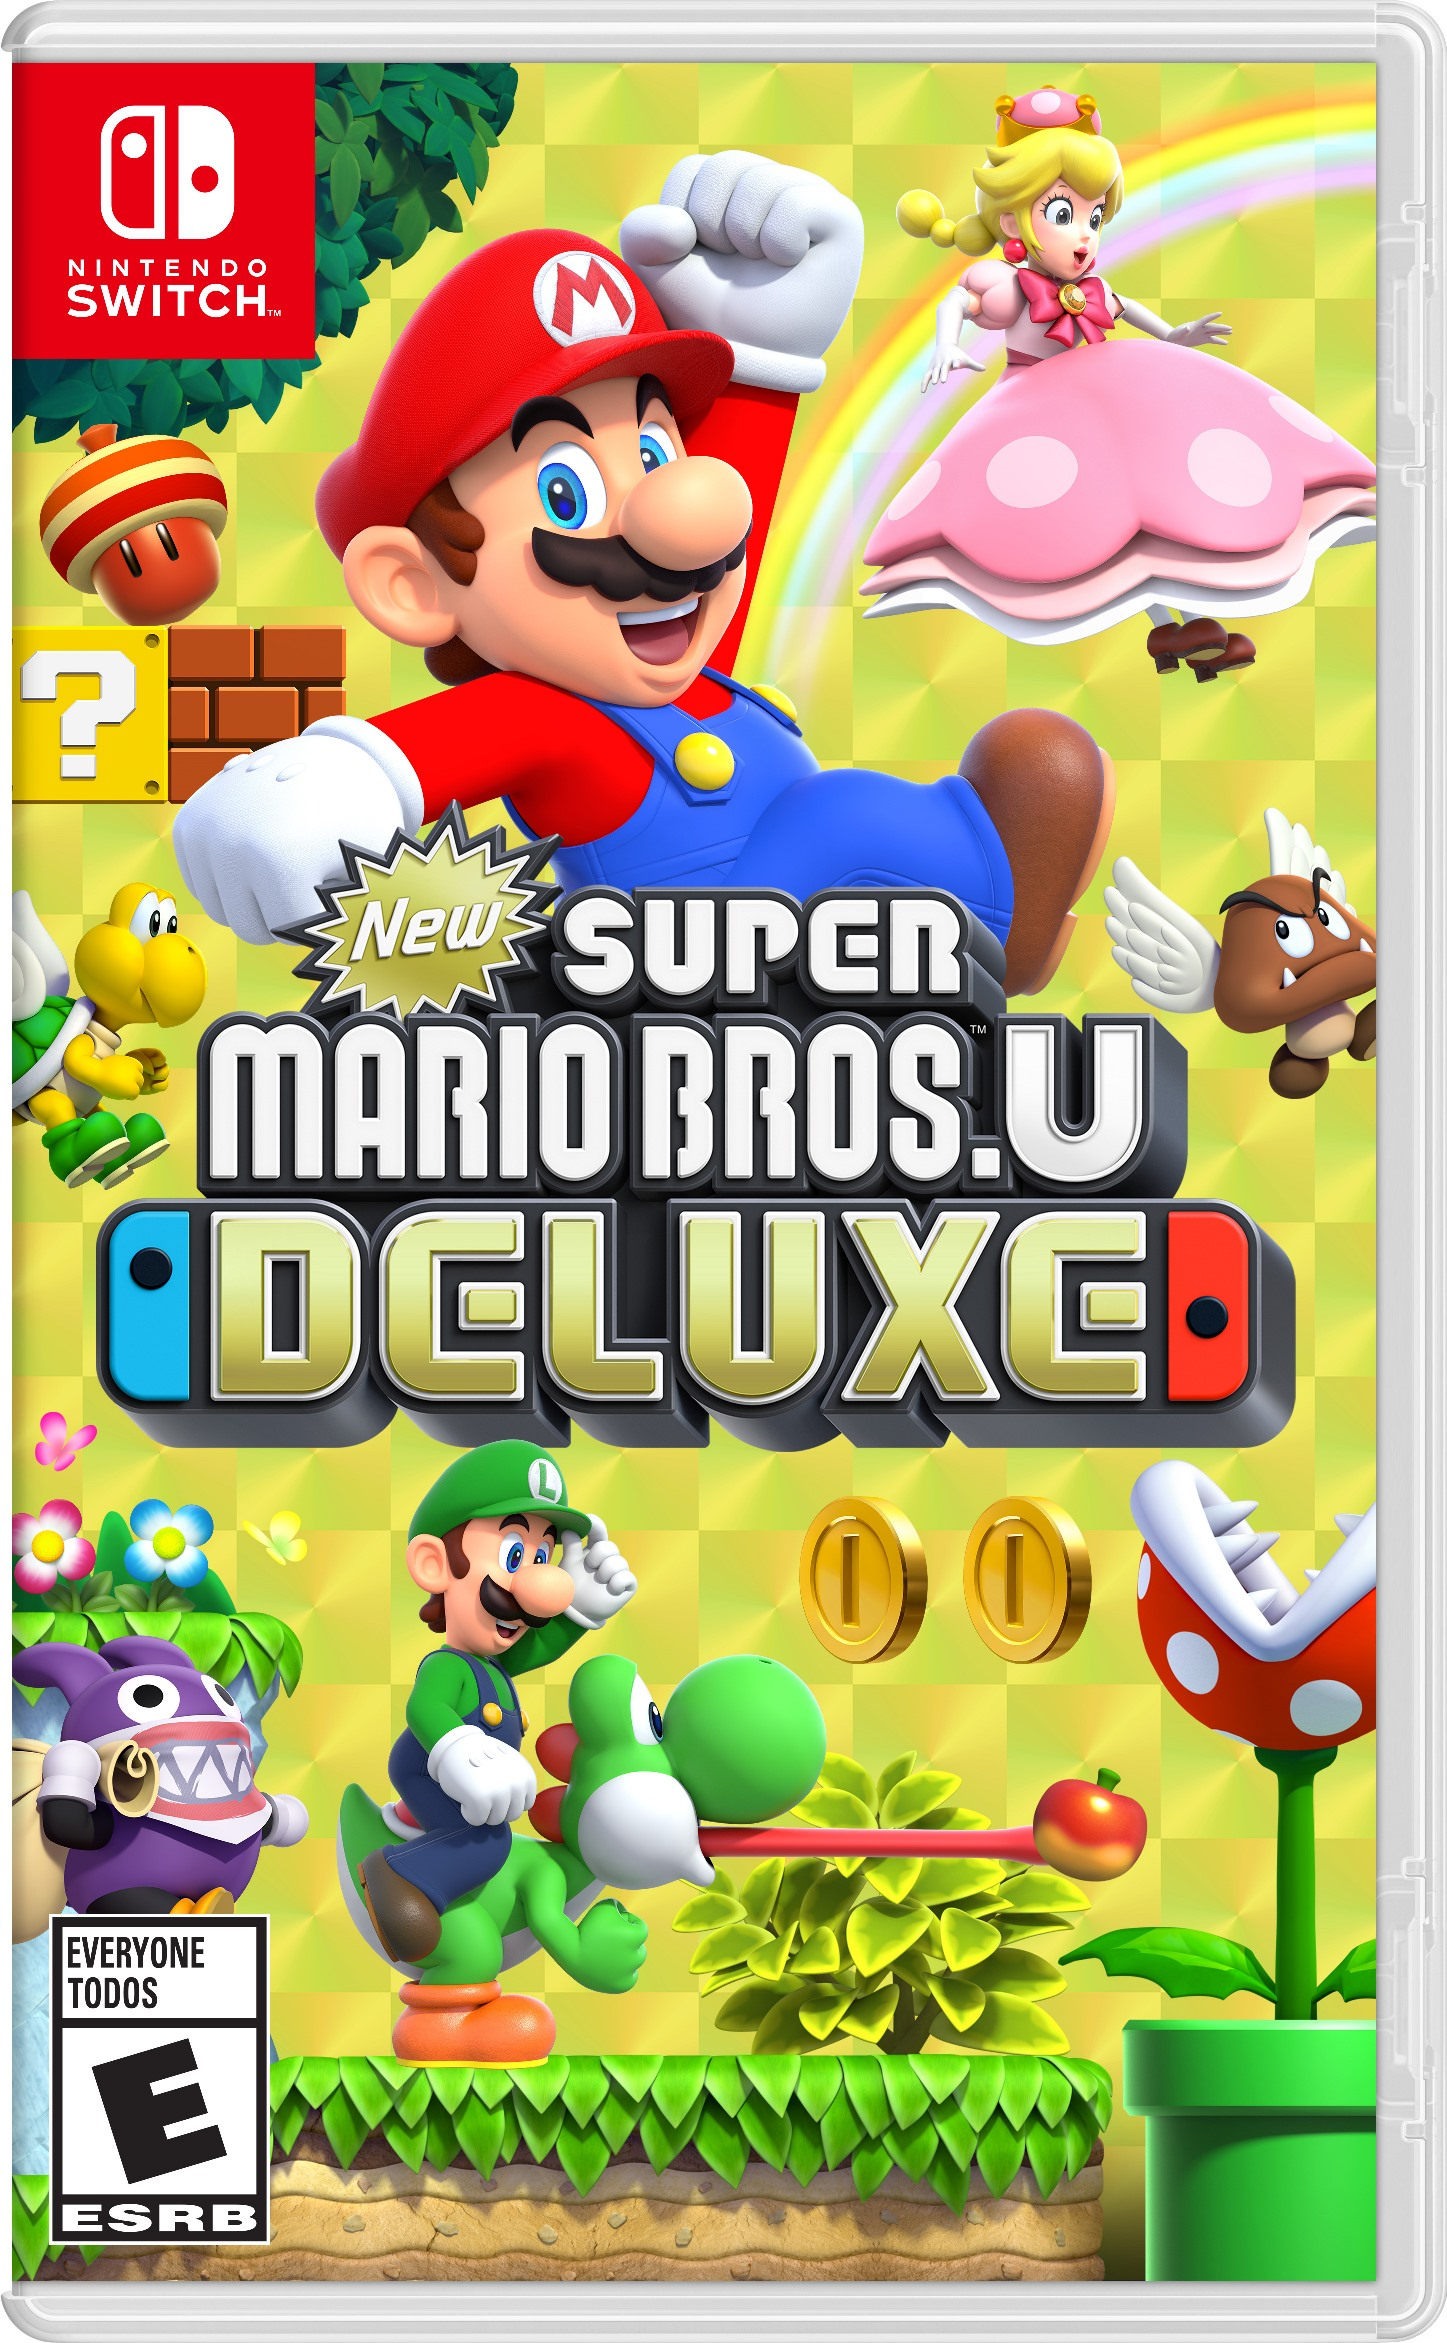 New Super Mario Bros. Deluxe boxart, screenshots, art - Nintendo ...